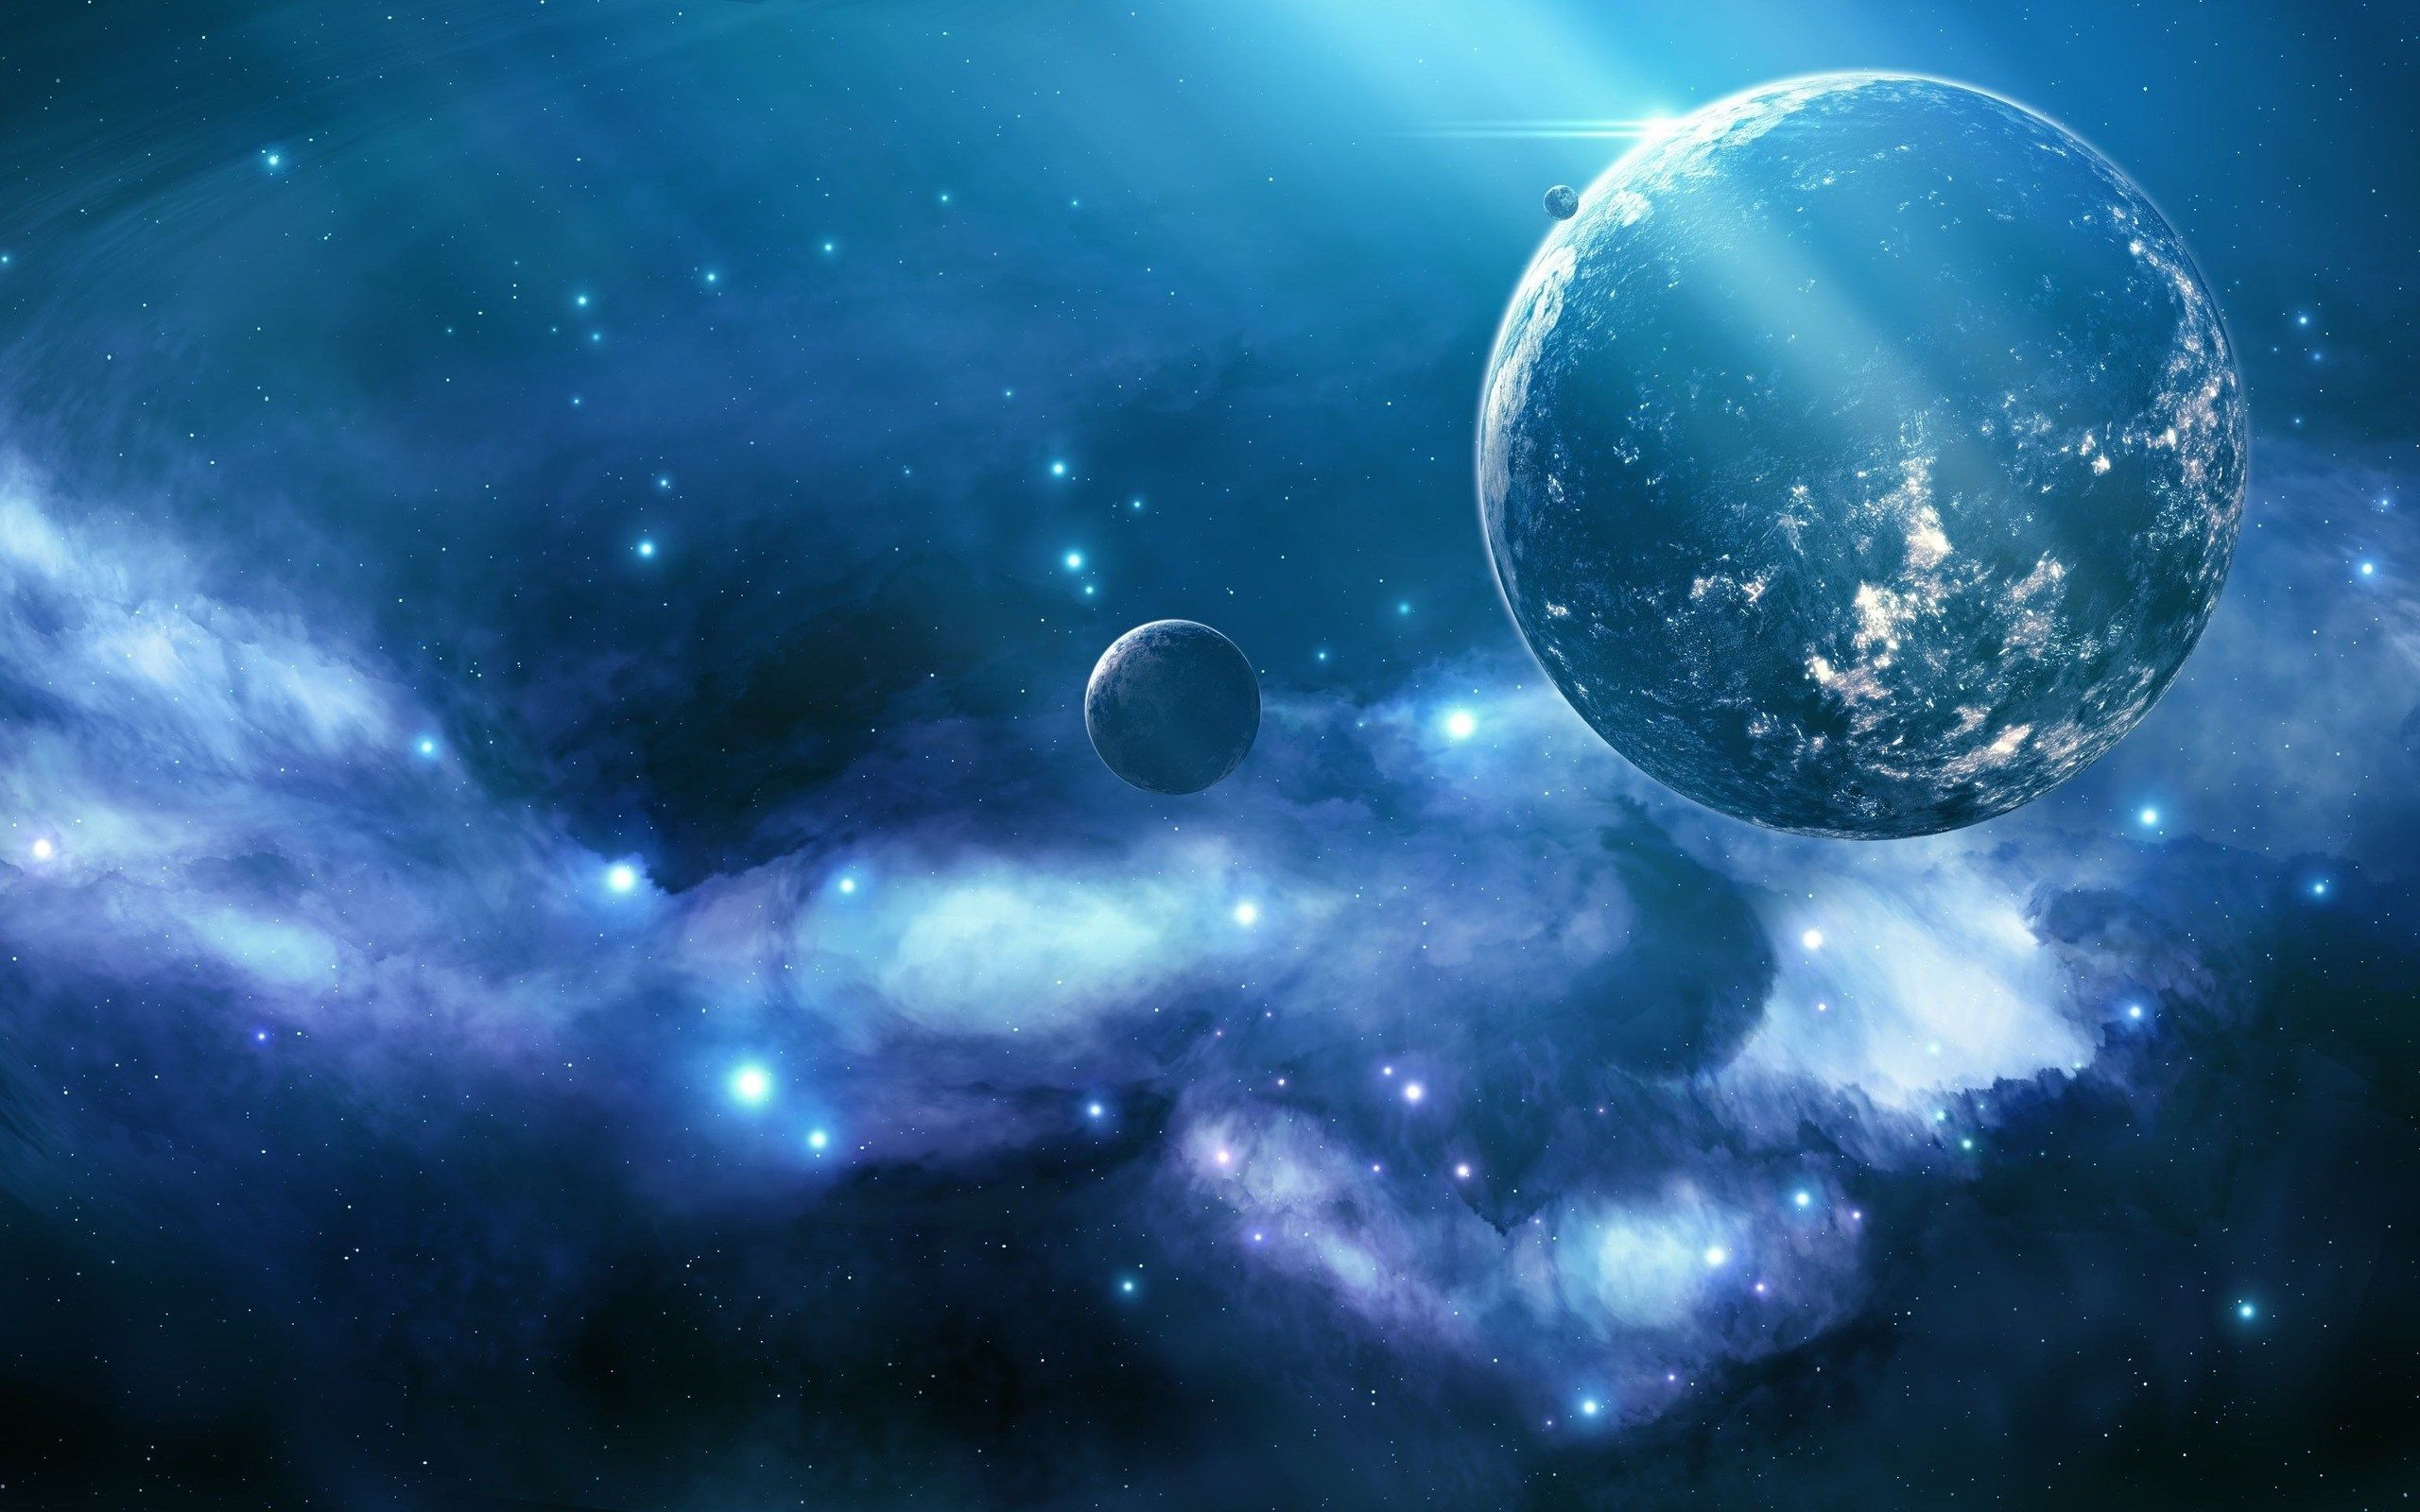 Digital Universe Planets Fantasy Space Pictures Hd